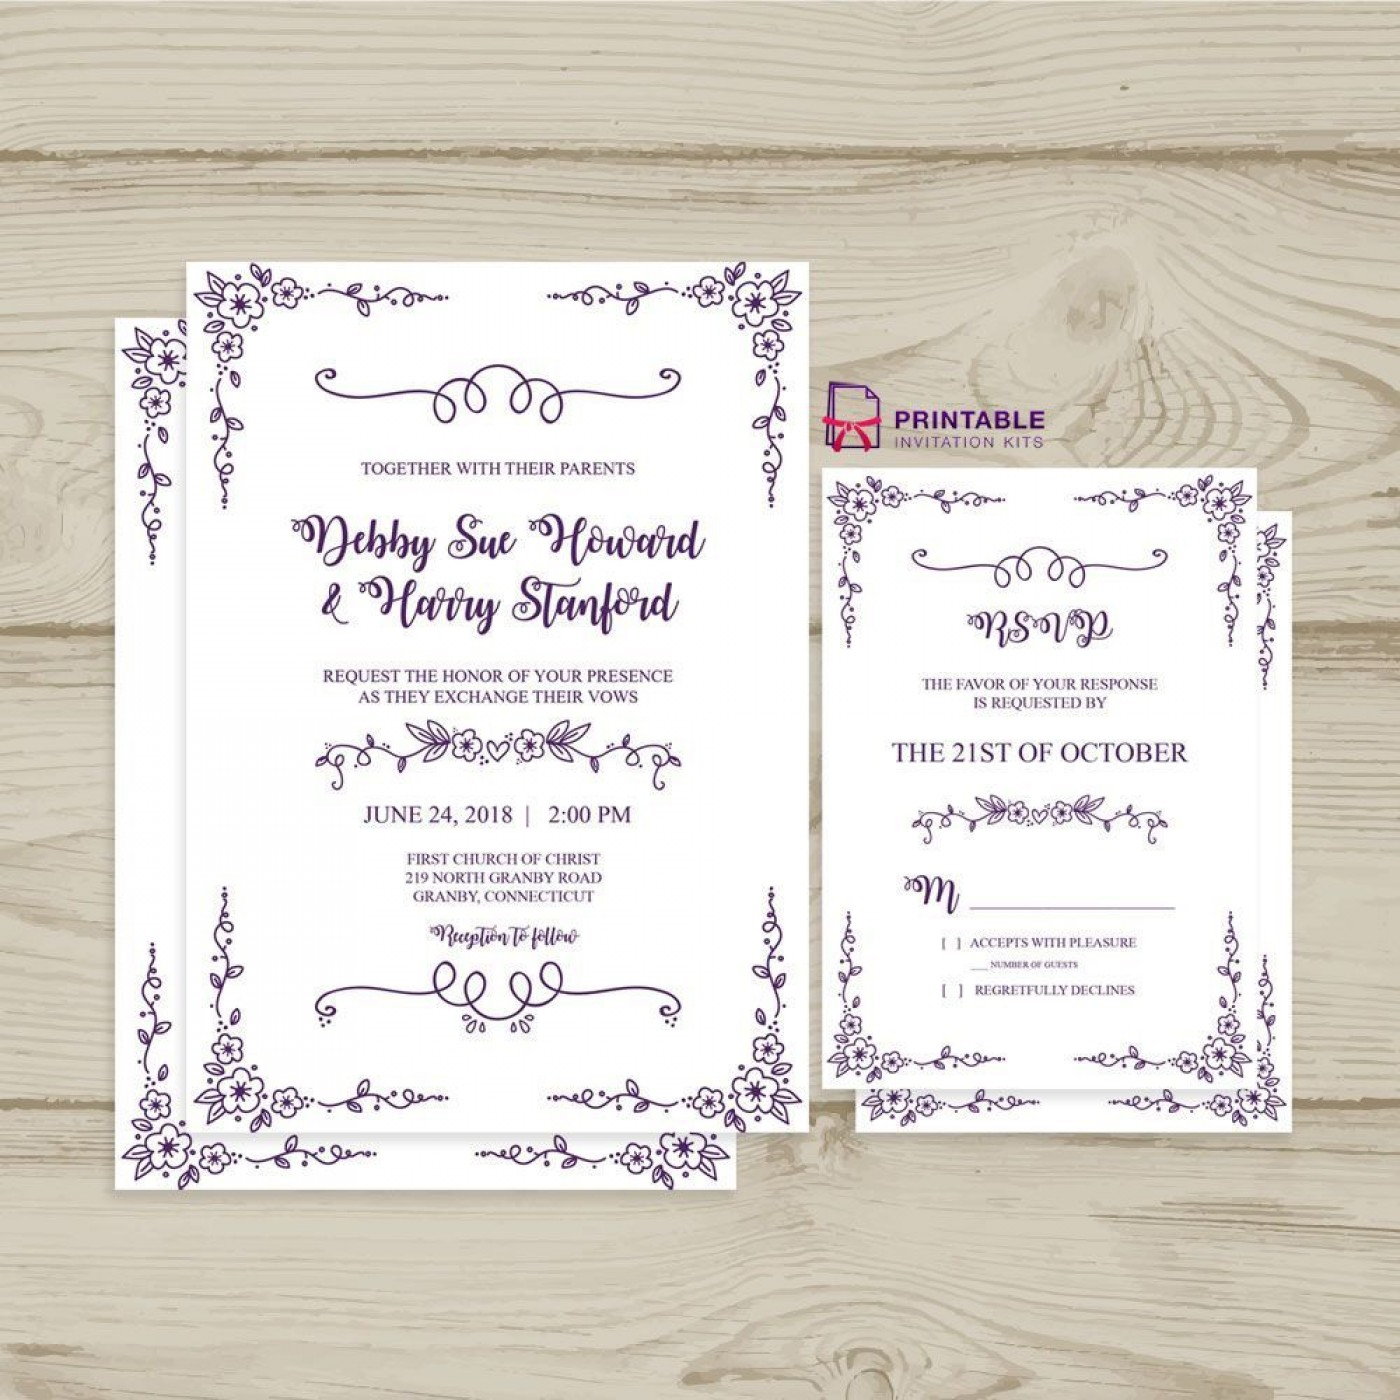 001 Best Free Download Wedding Invitation Maker Software Design  Video For Window 7 Card1400